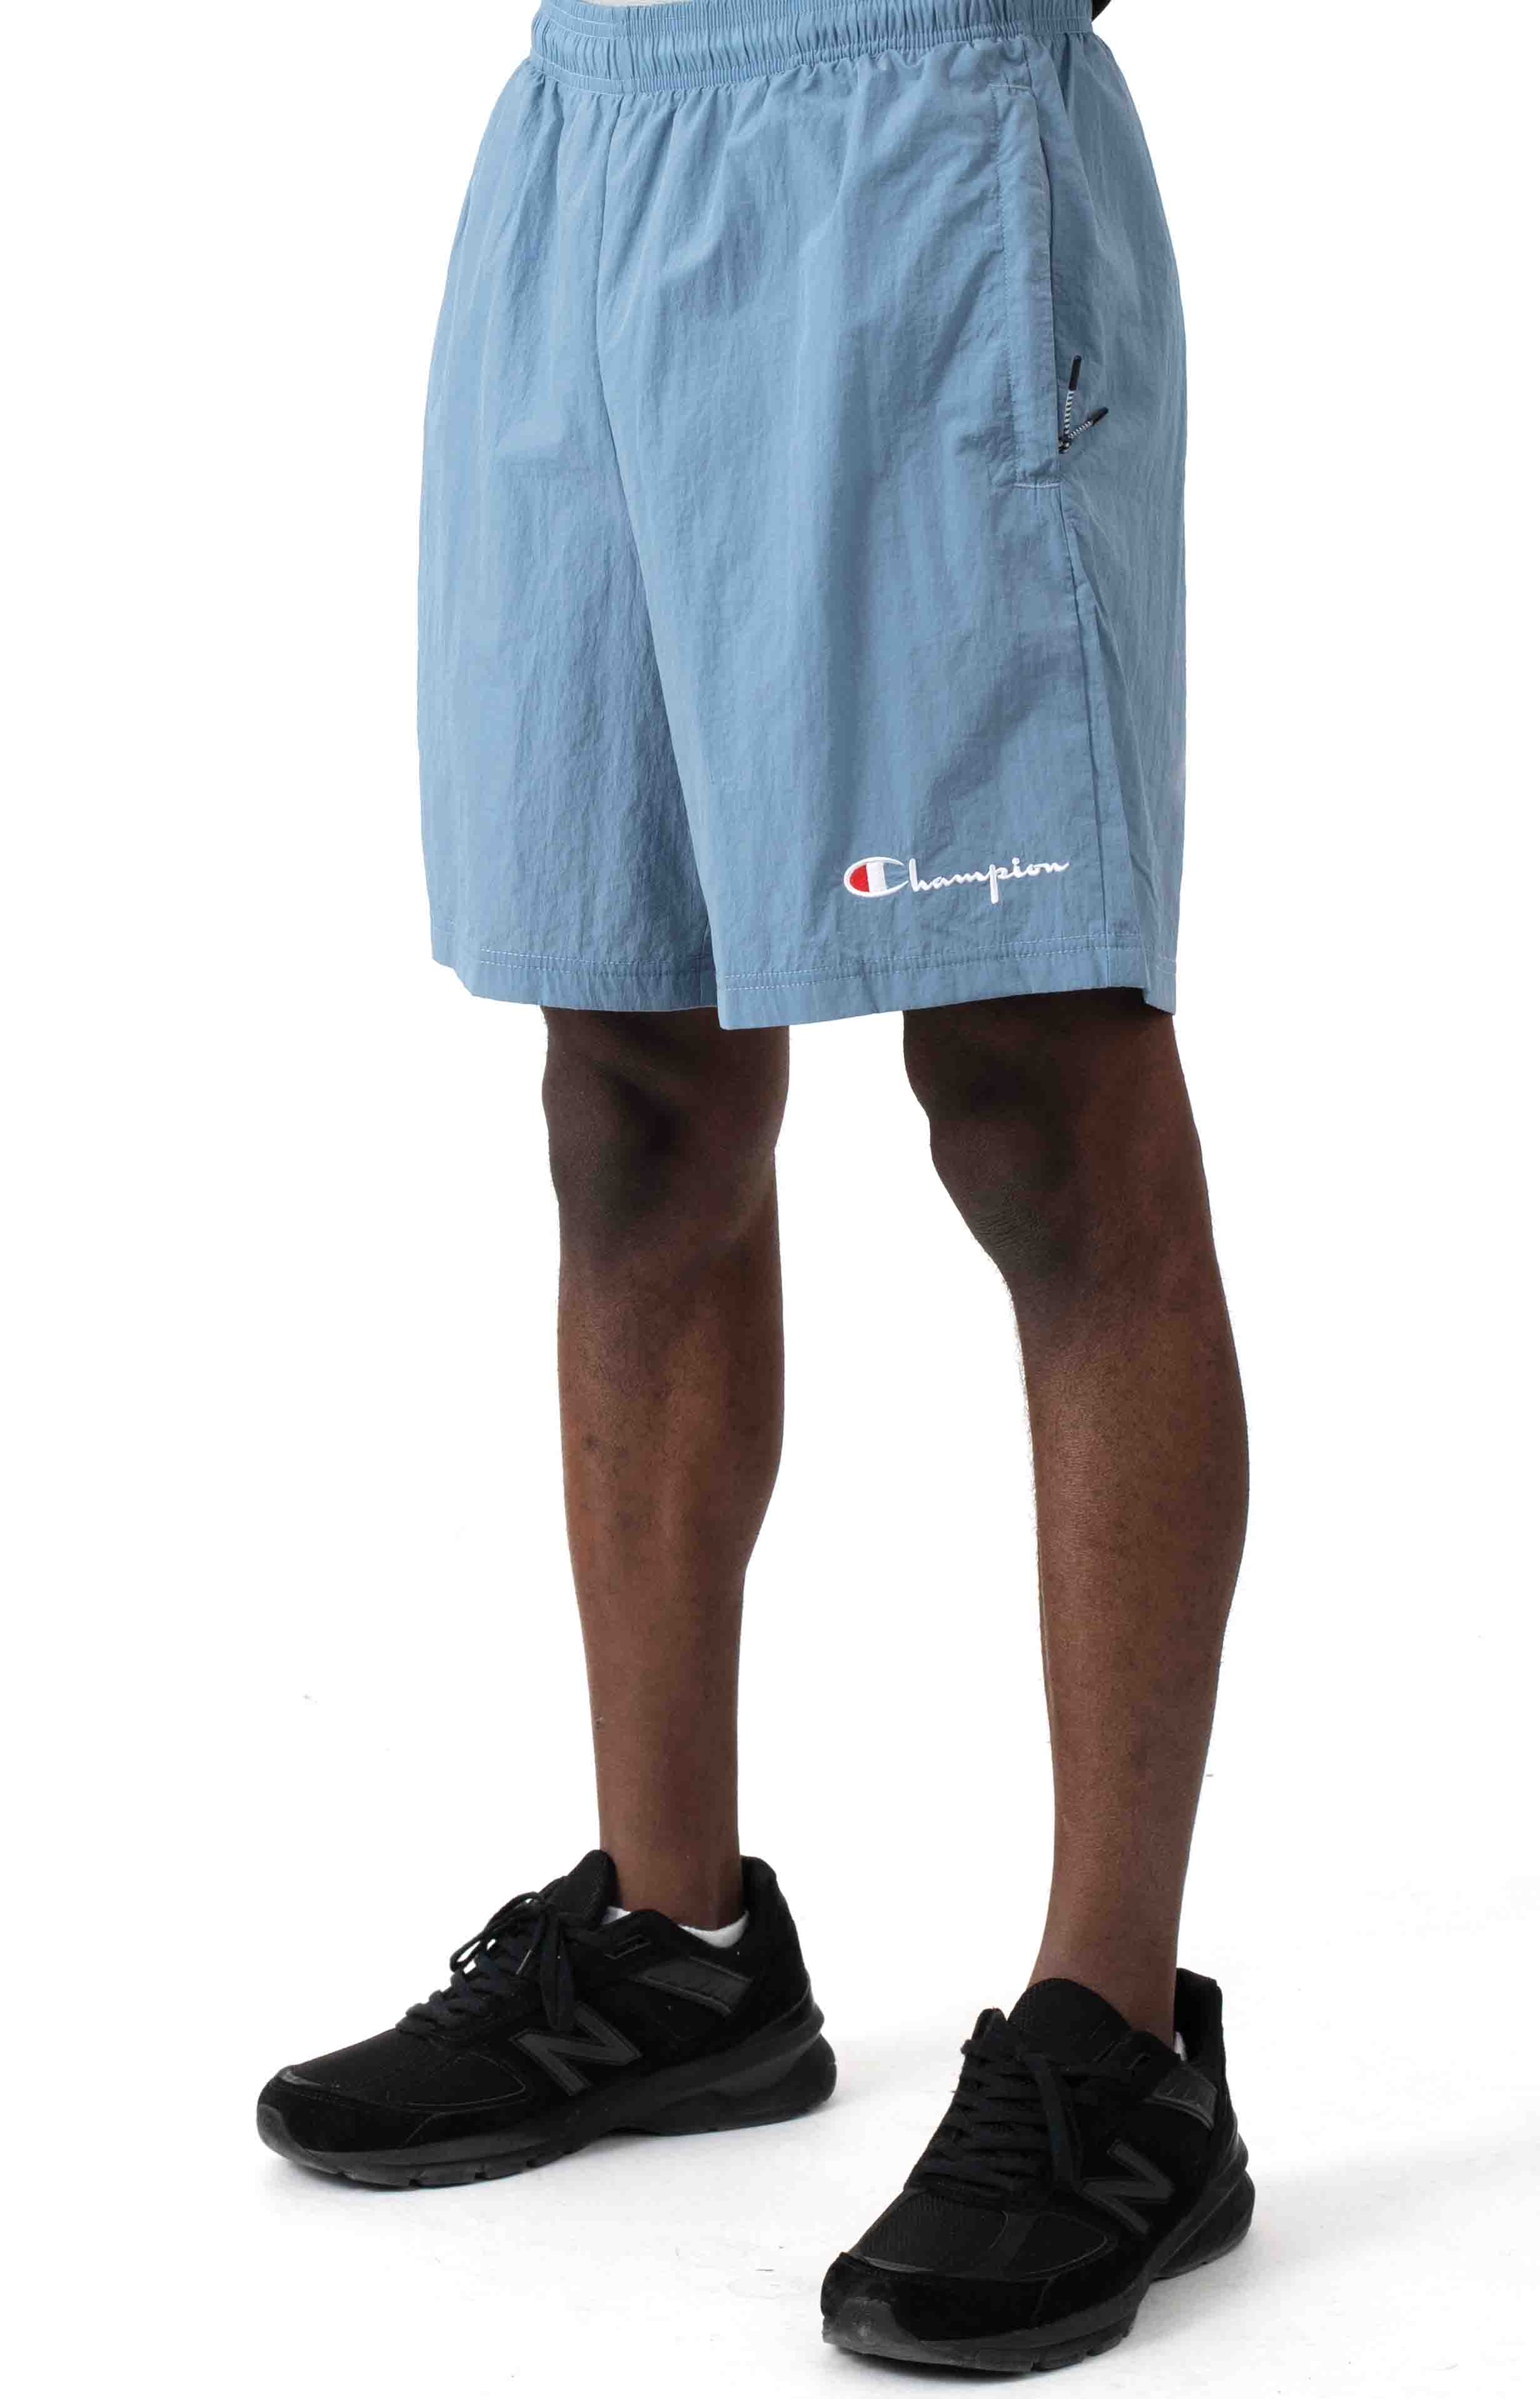 6-Inch Nylon Warm Up Shorts - Wildflower Pale Blue